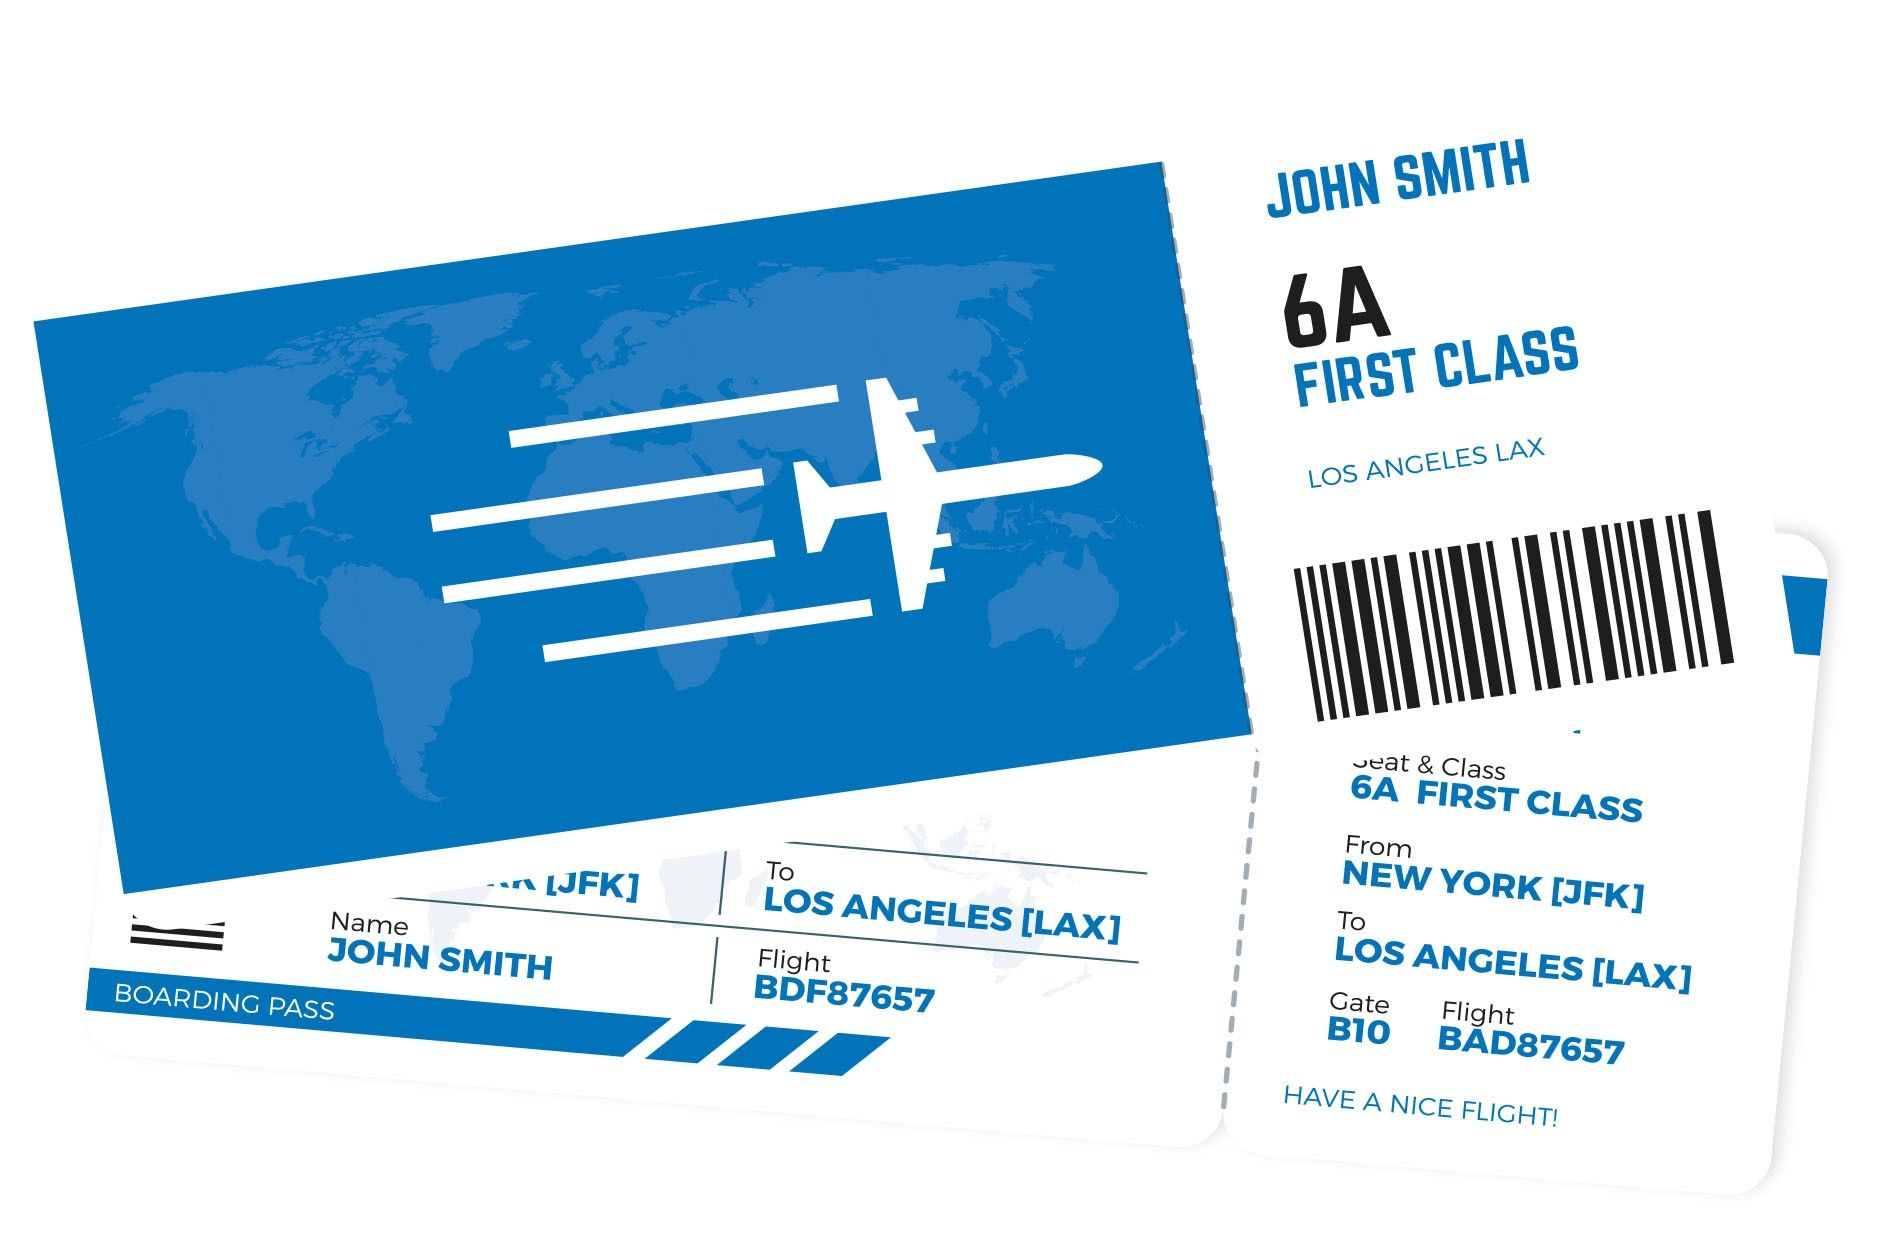 Frequent flyer: Amending a passenger's name on a plane ticket | National Geographic